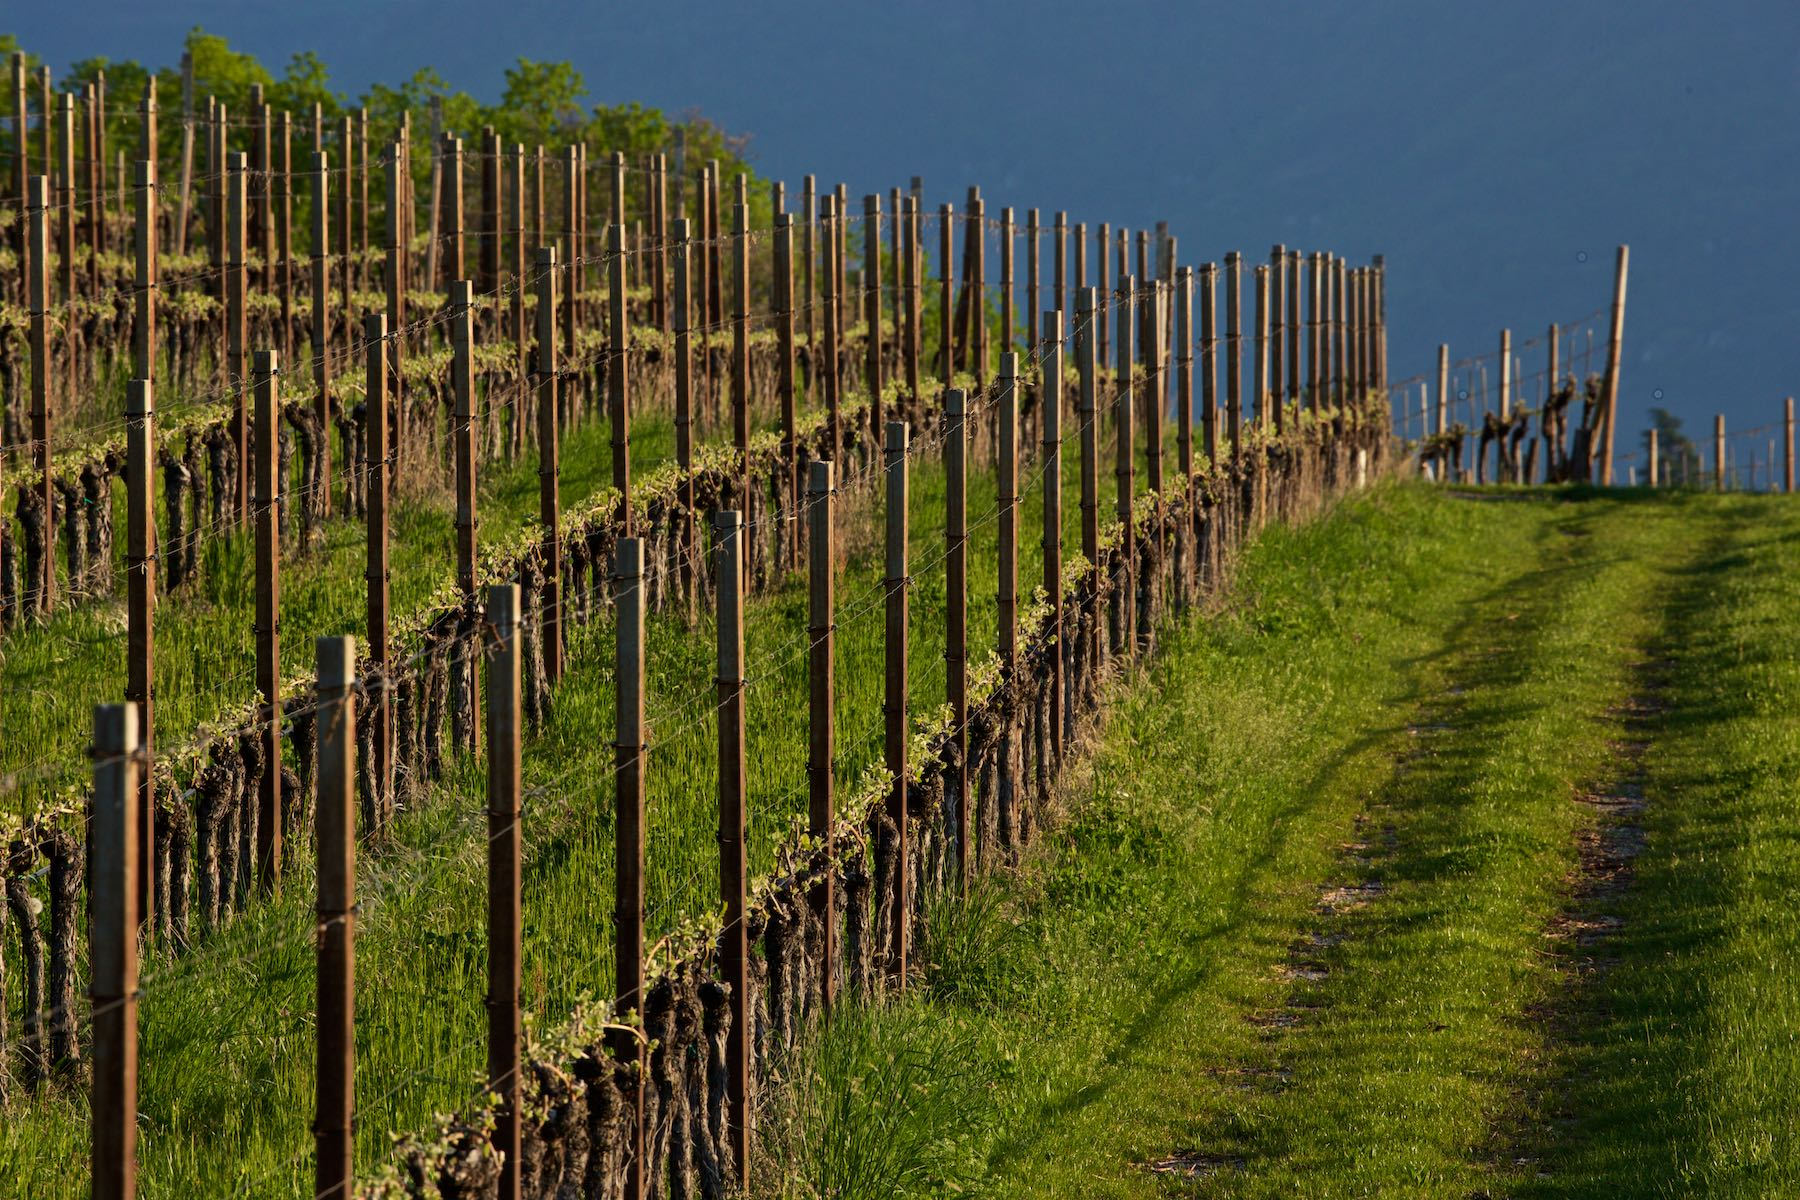 Muri-Gries Vineyard, Appiano